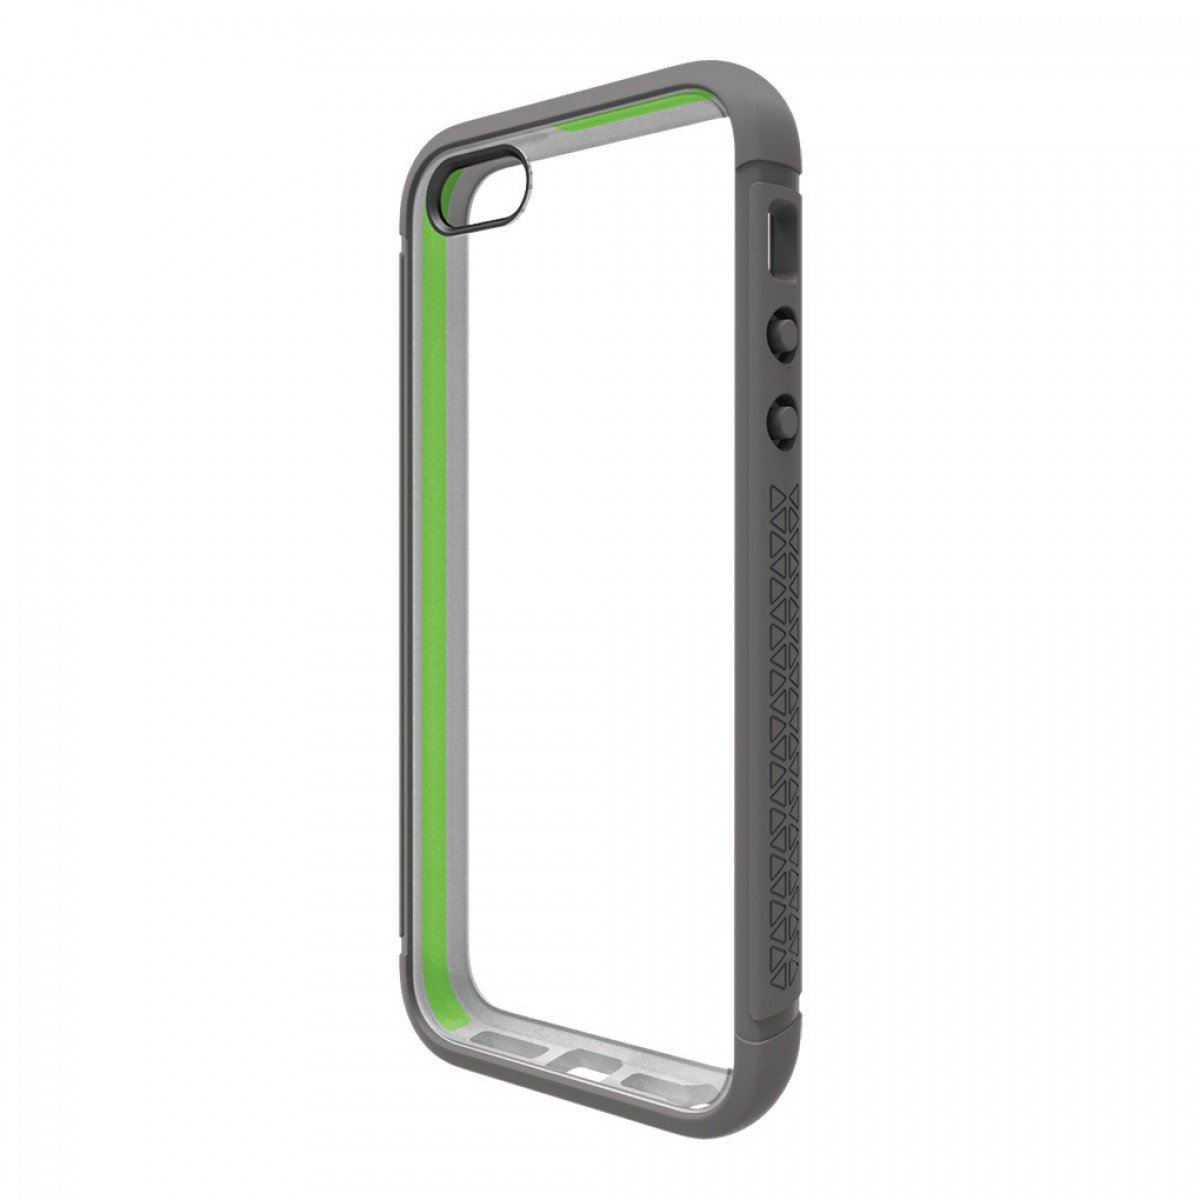 BodyGuardz Contact® Case with Unequal Technology for Apple iPhone 5s